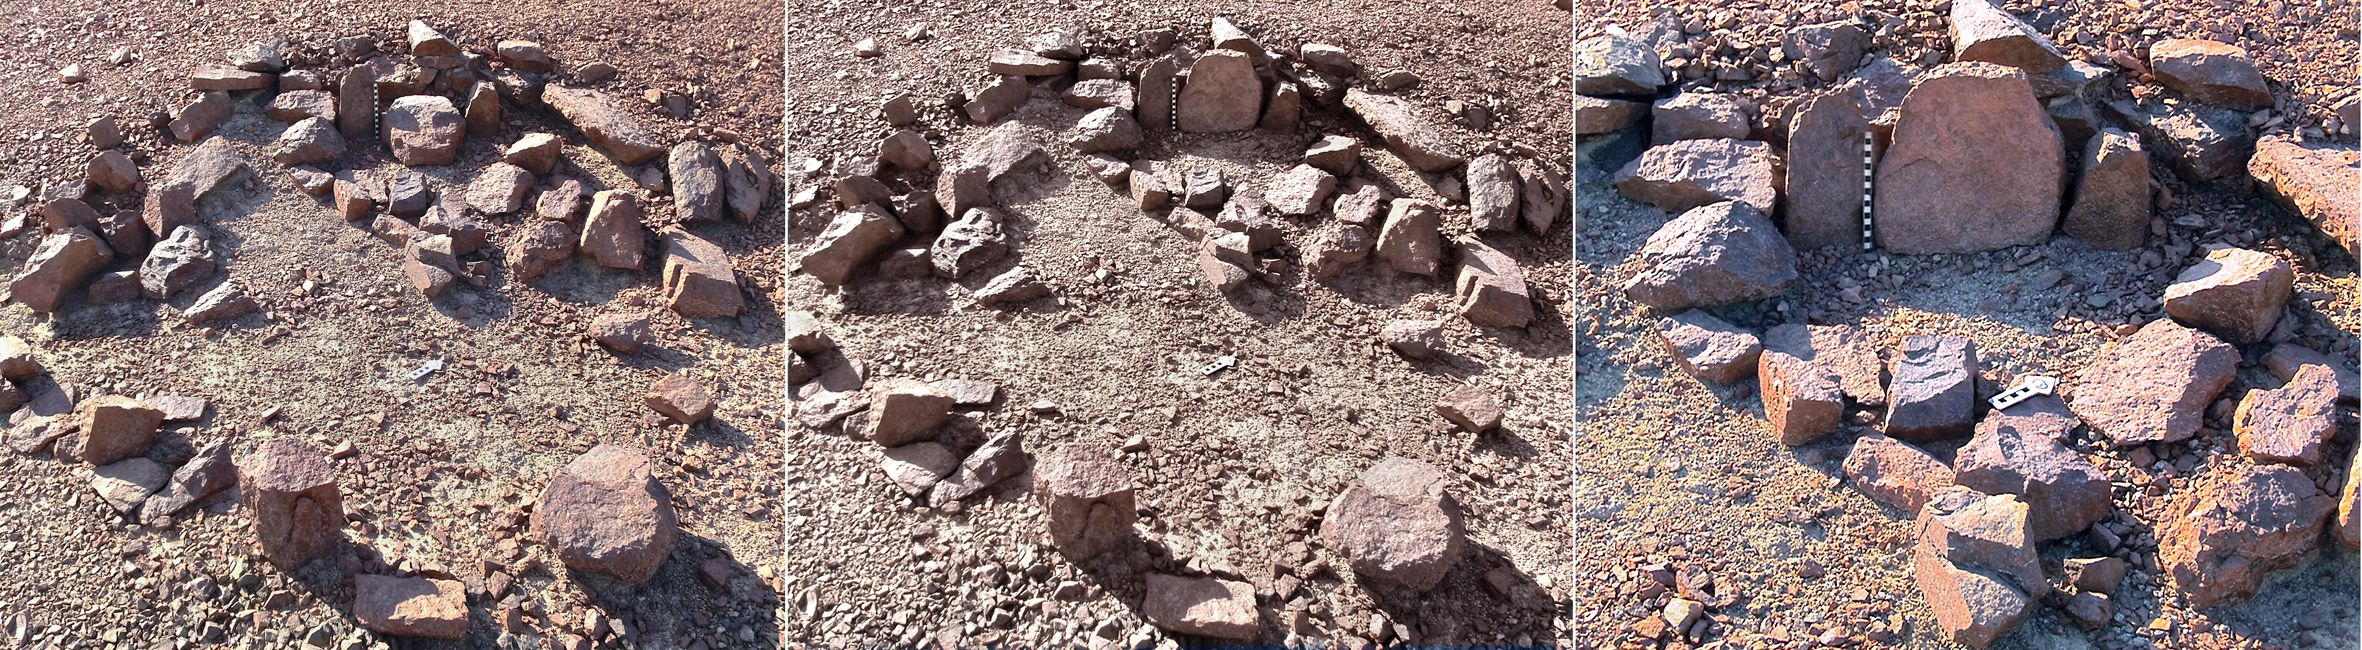 9000 year-old cultic sites in Southern Israel mountains near Eilat http://www.haaretz.com/life/archaeology/.A triad of masseboth in a circular cell, as found, and after re-setting the central one. Photo: Uzi Avner